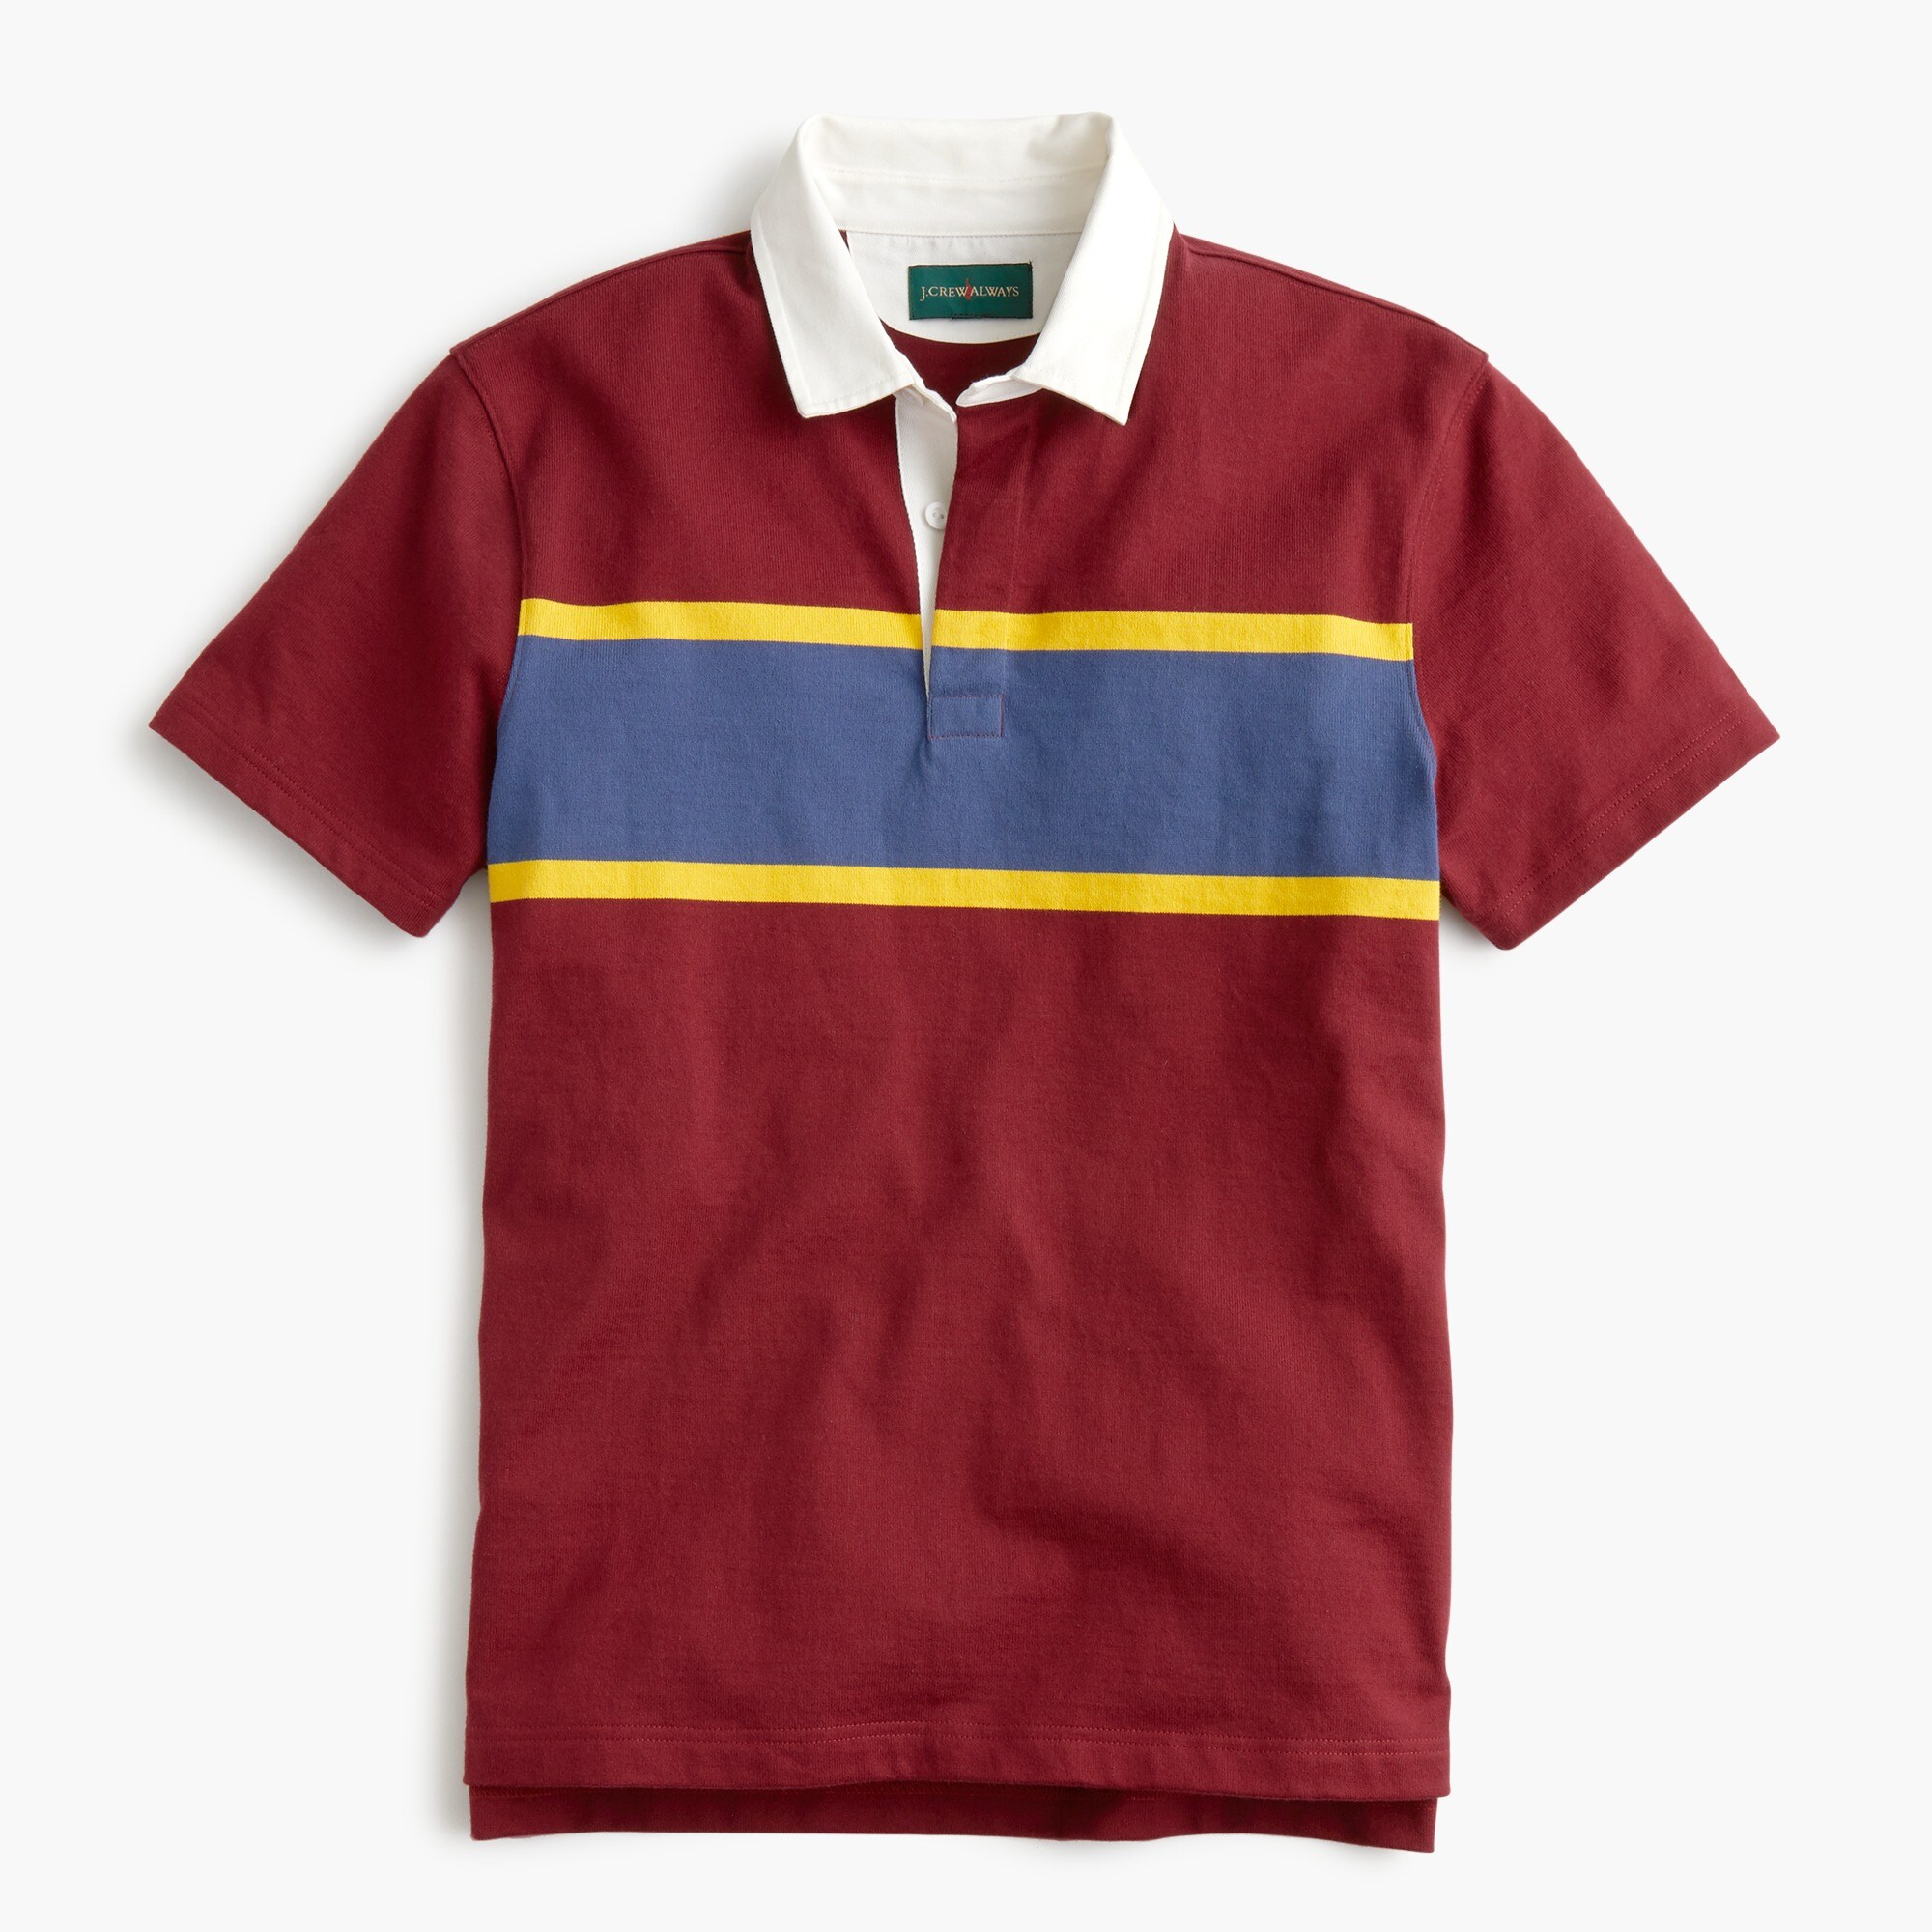 Image 3 for Tall short-sleeve 1984 rugby shirt in red